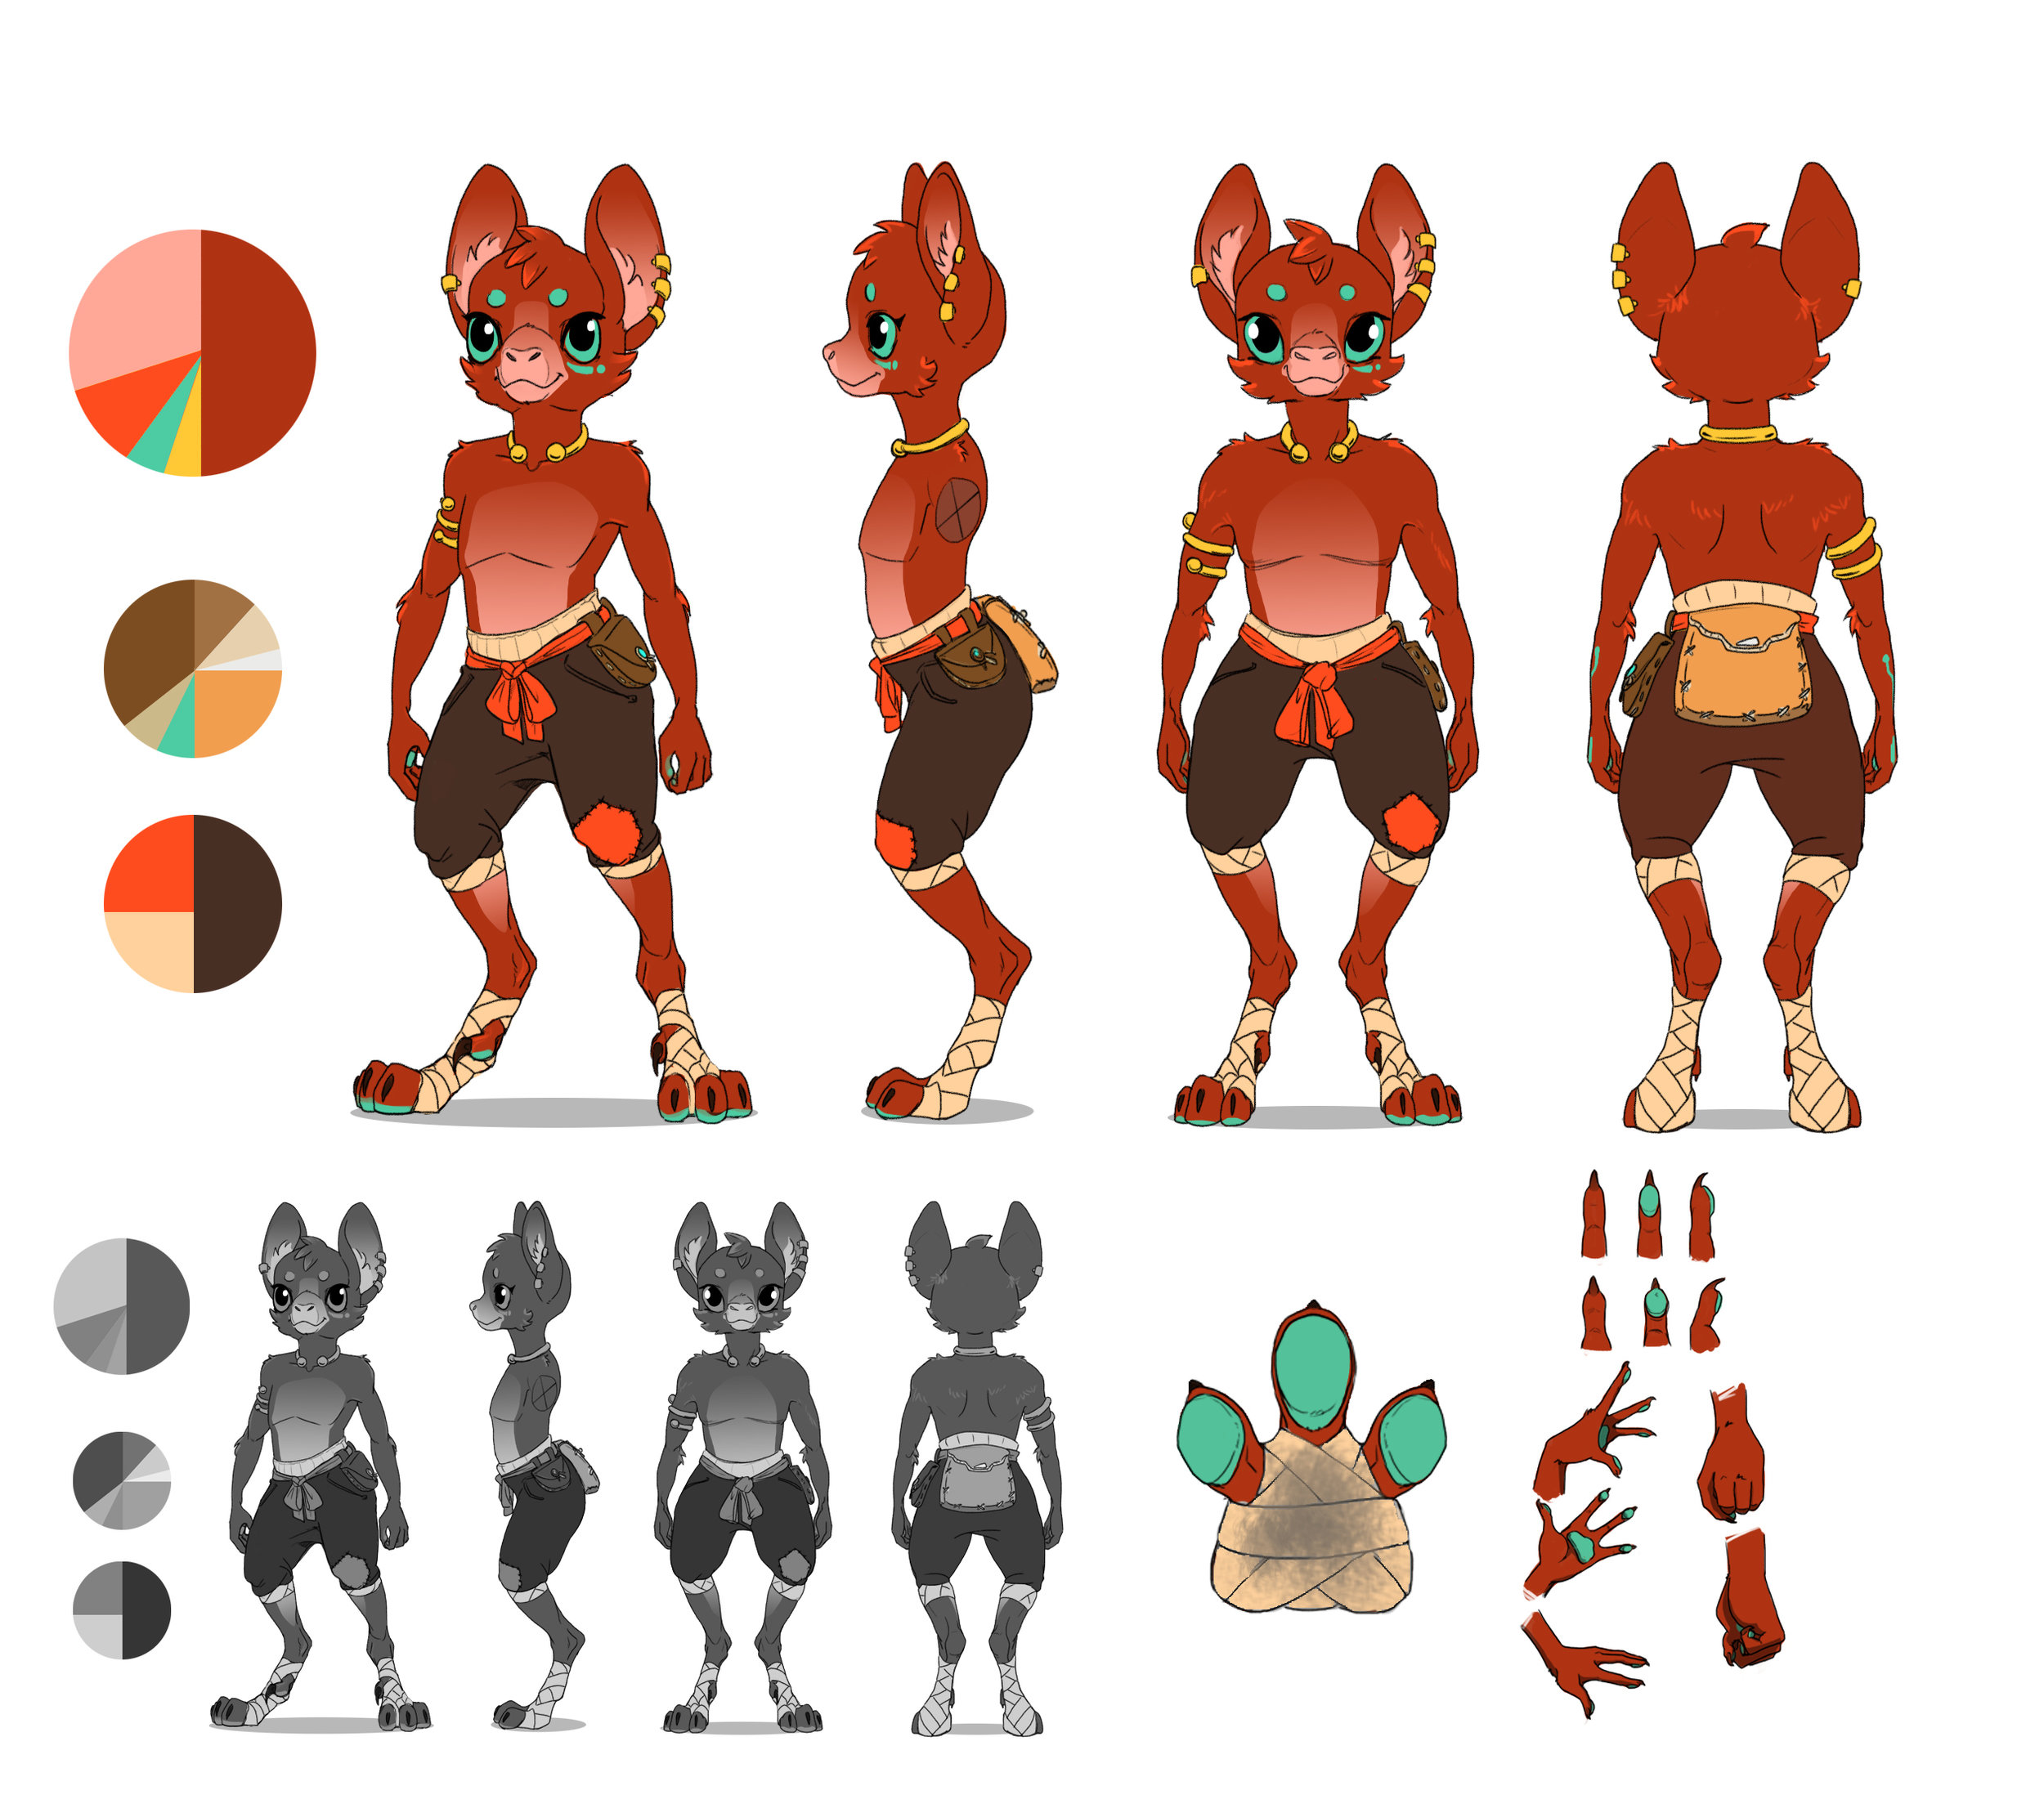 Final concept   The final character sheet for Altiia